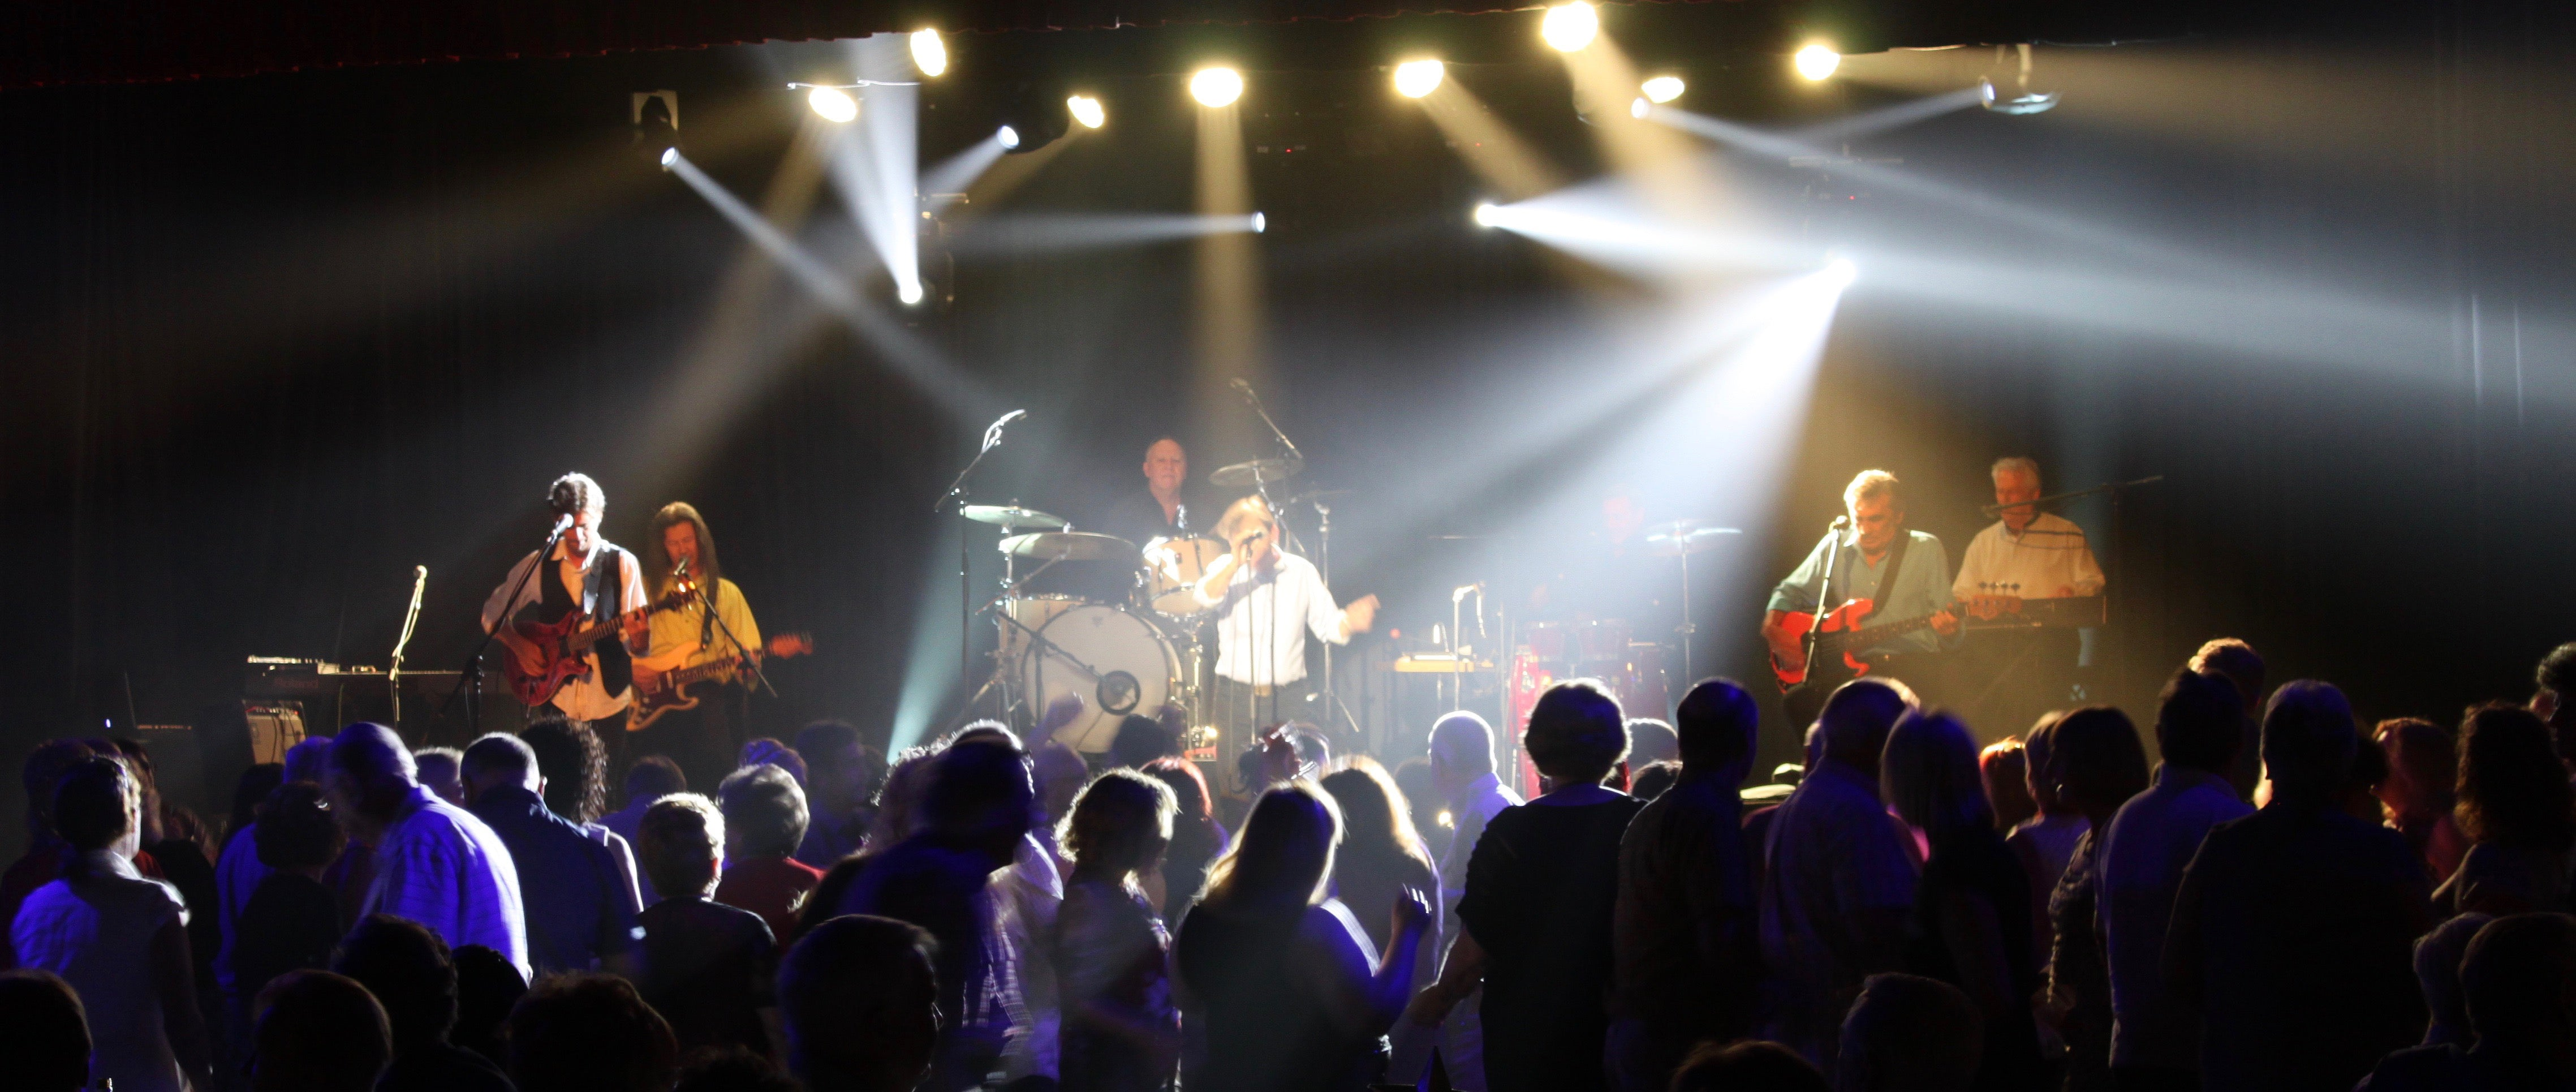 John Paul Young with crowd at Canterbury Hurlstone RSL